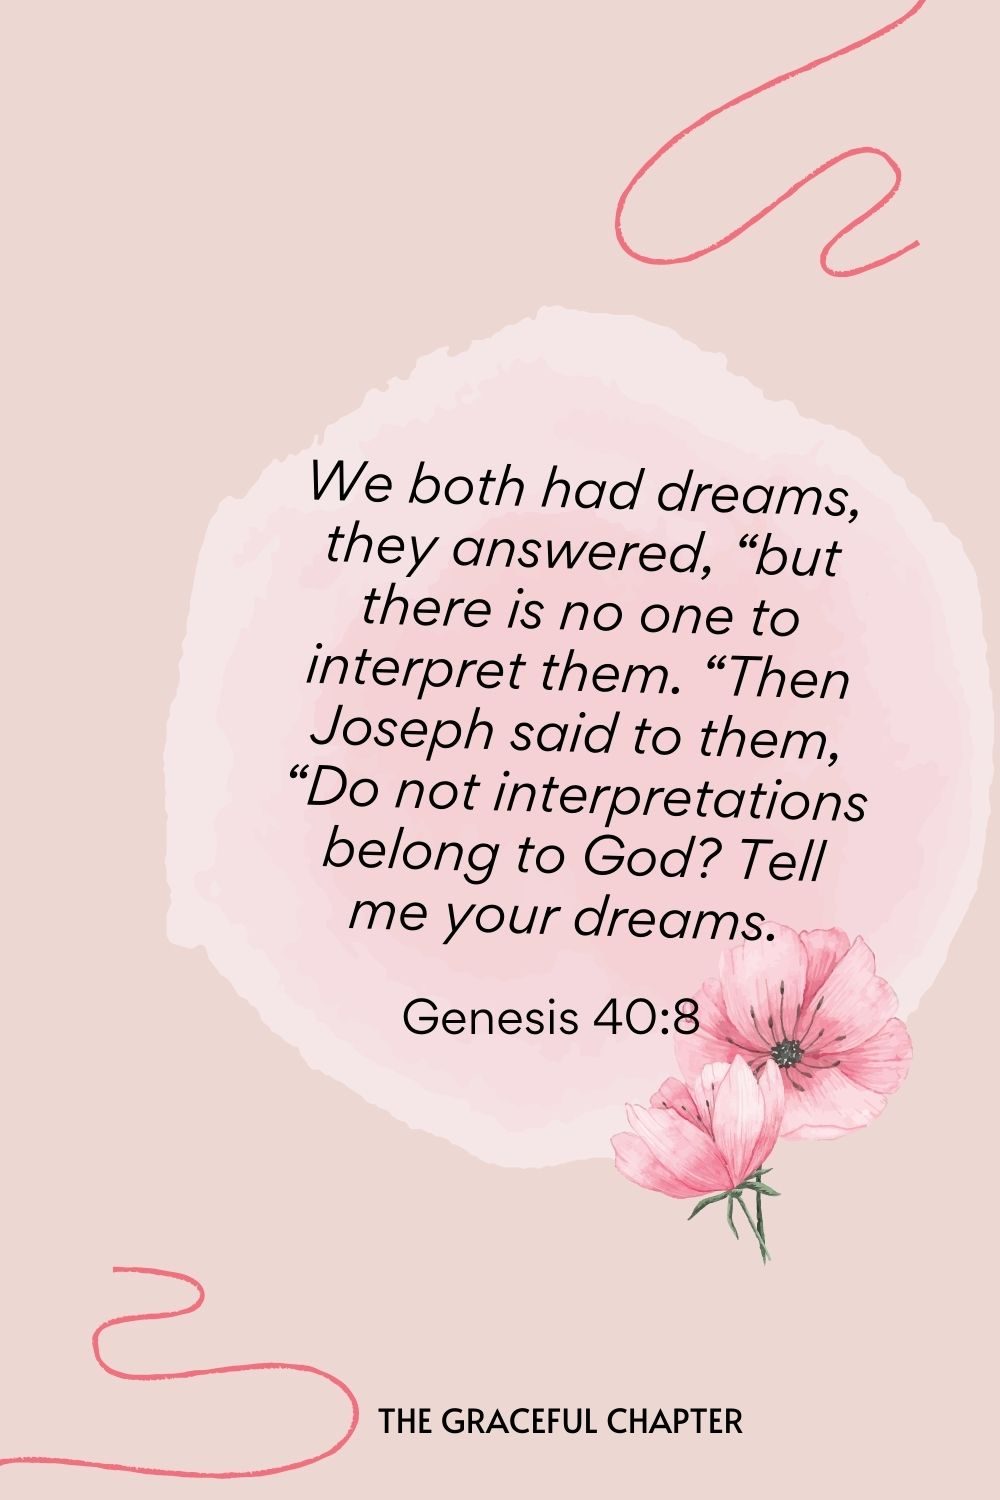 """We both had dreams, they answered, """"but there is no one to interpret them. """"Then Joseph said to them, """"Do not interpretations belong to God? Tell me your dreams.  Genesis 40:8"""